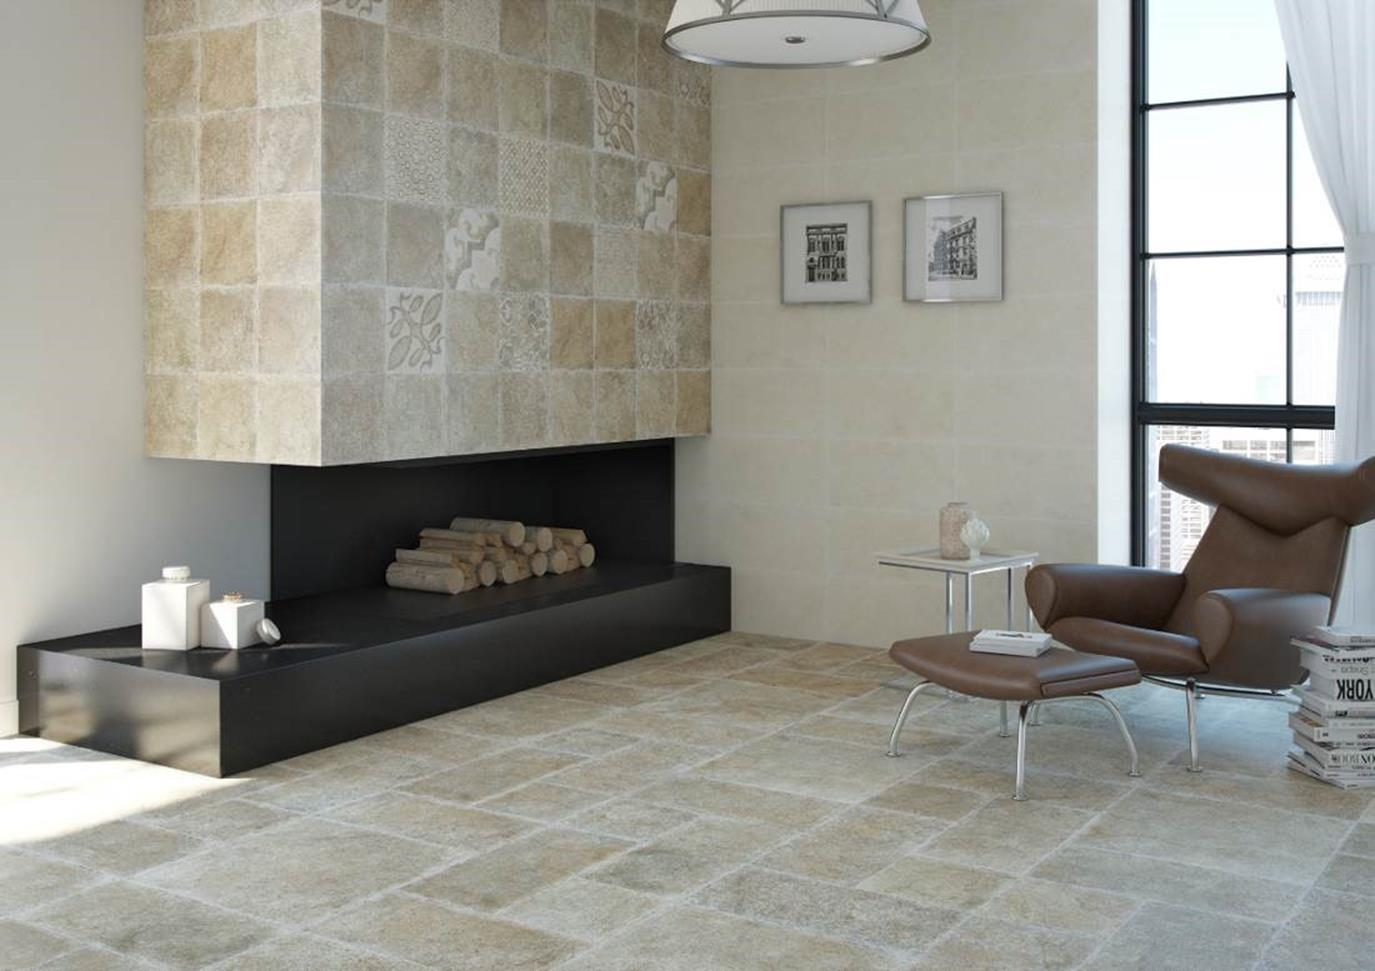 Bellacasa – Quercy Series. Porcelain floor tile in 60.5 X 60.5 Cm. (24 X 24 inches).  On the wall of the fireplace the format is 30 X 30 Cm. (12 X 12 inches)